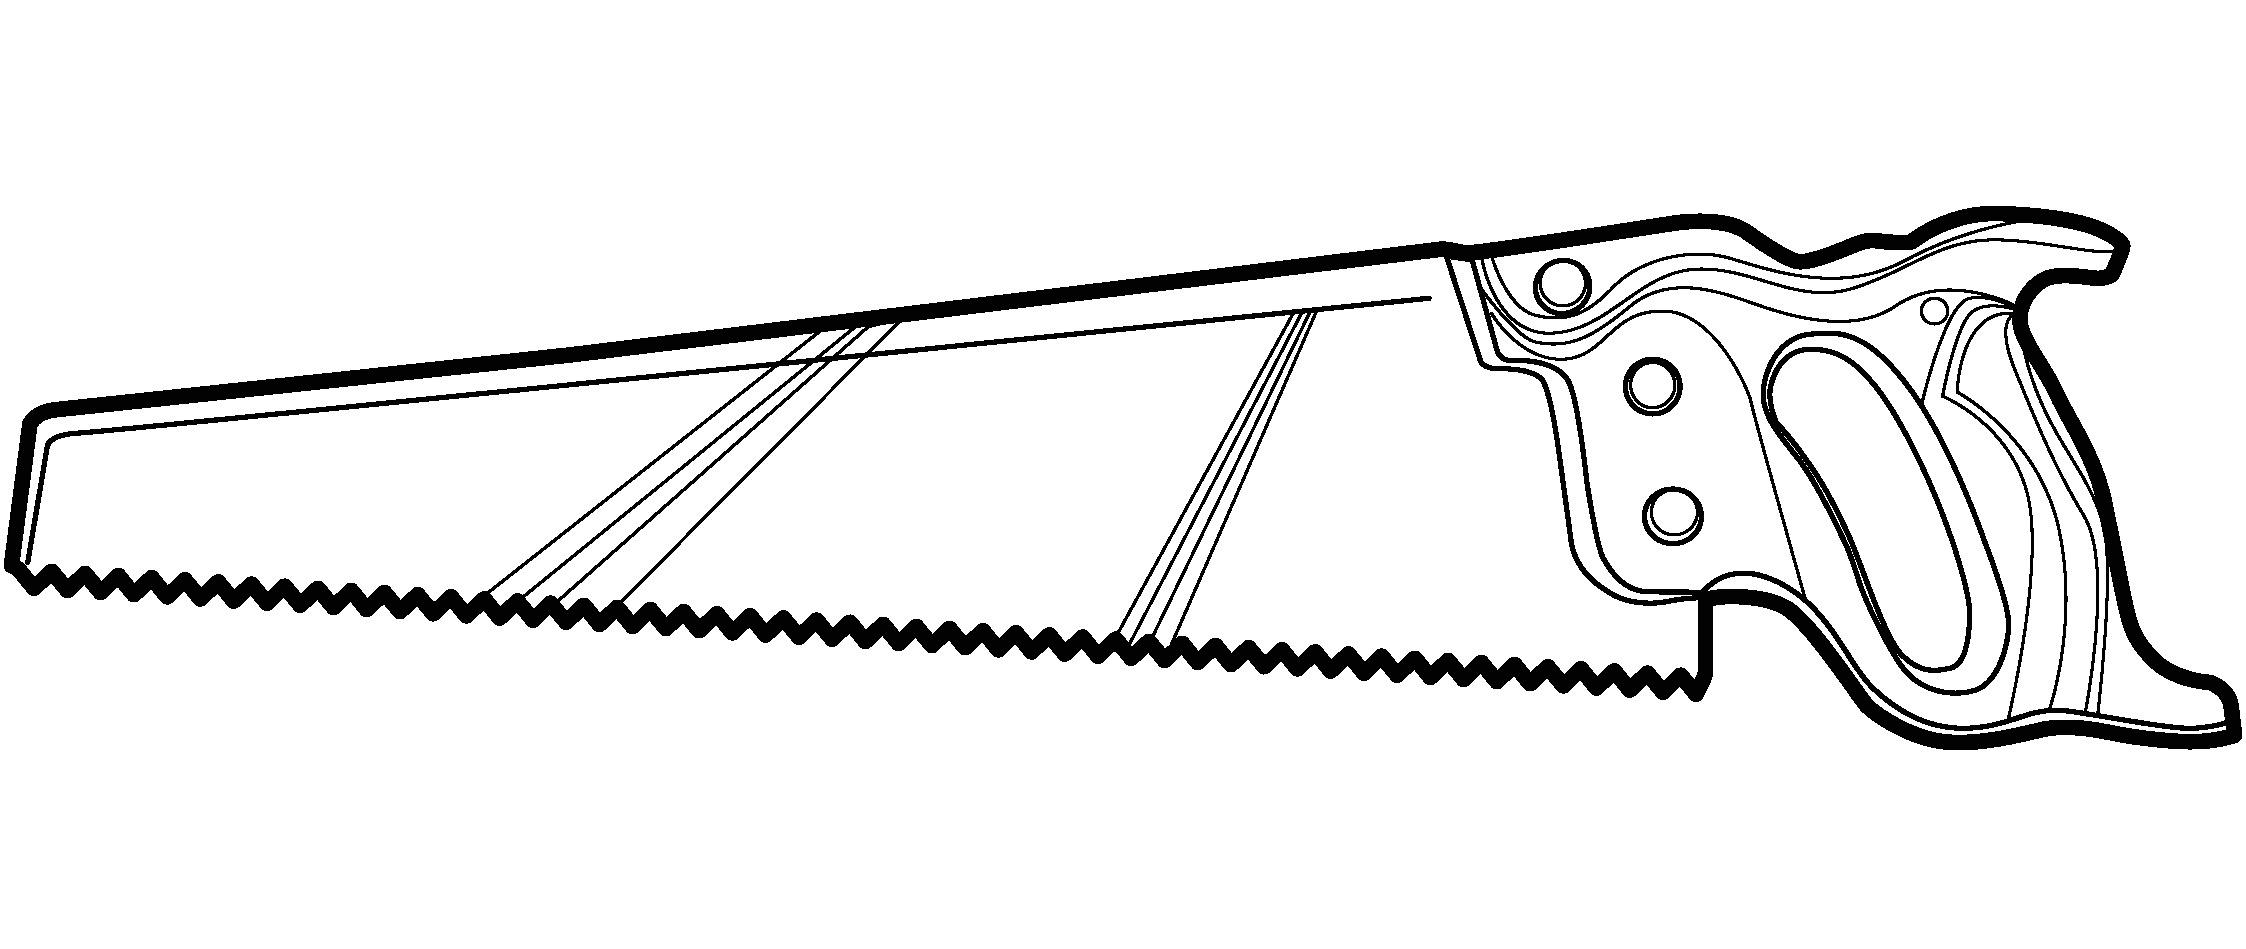 Hack, Jig, Miter, and Cope: 10 Types of Saws and Their Uses